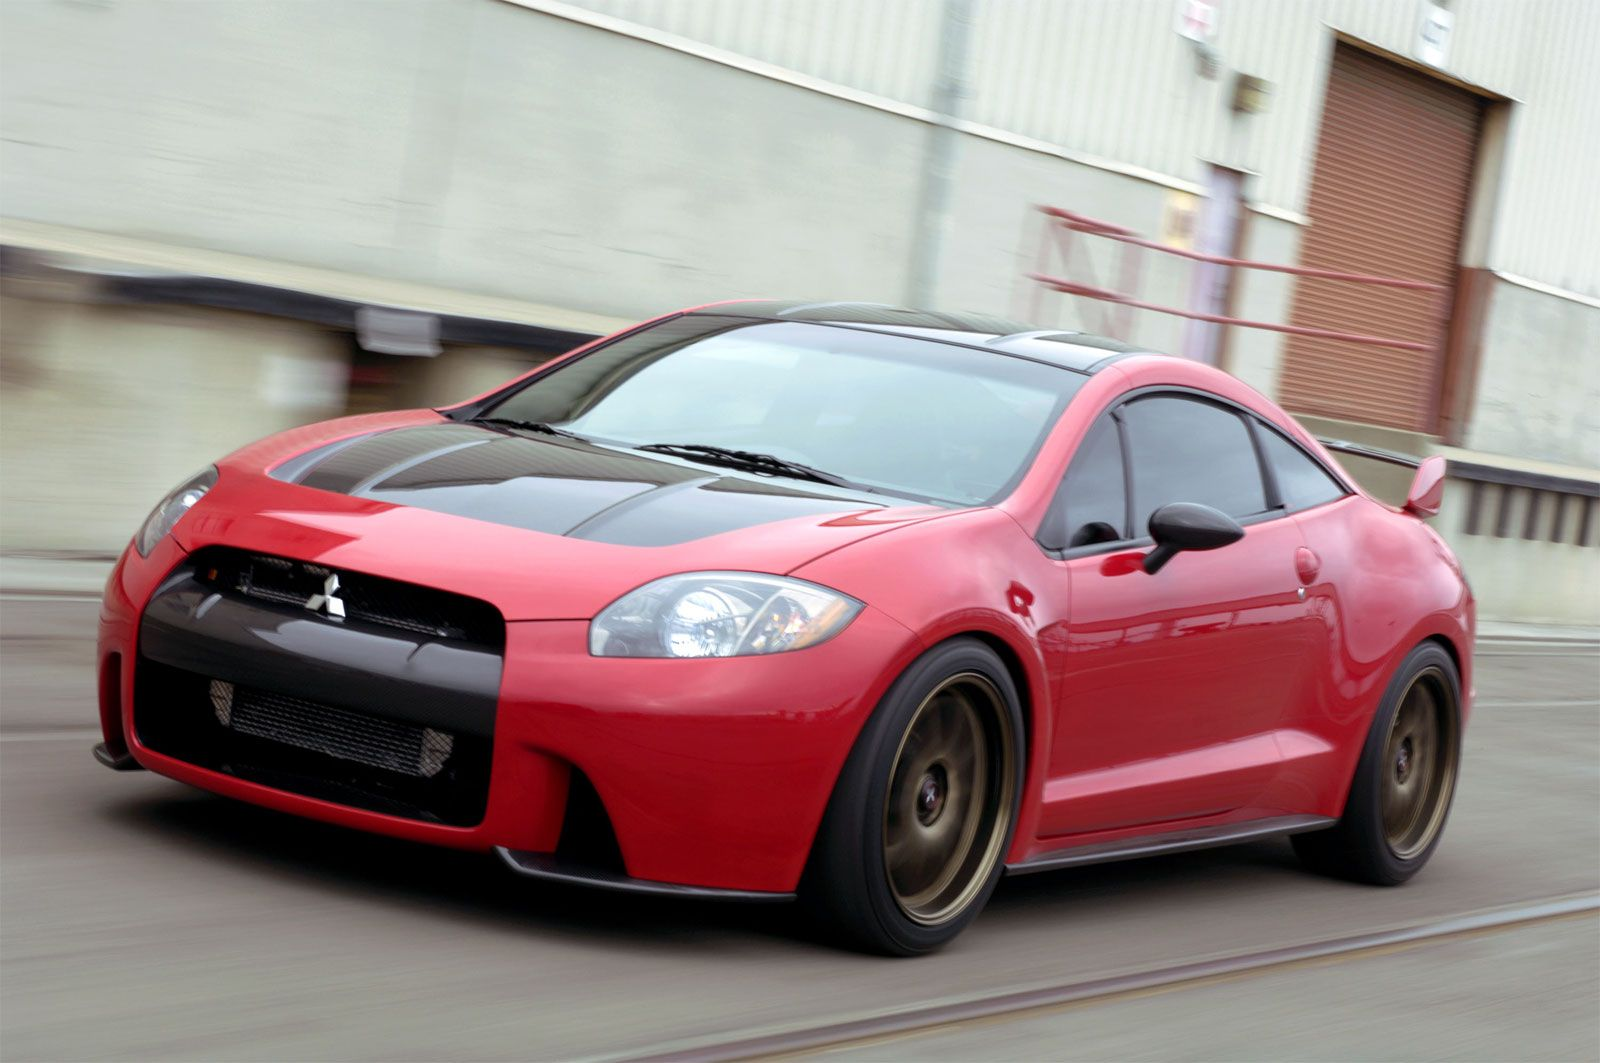 mitsubishi eclipse in red by far my most favorite car of all